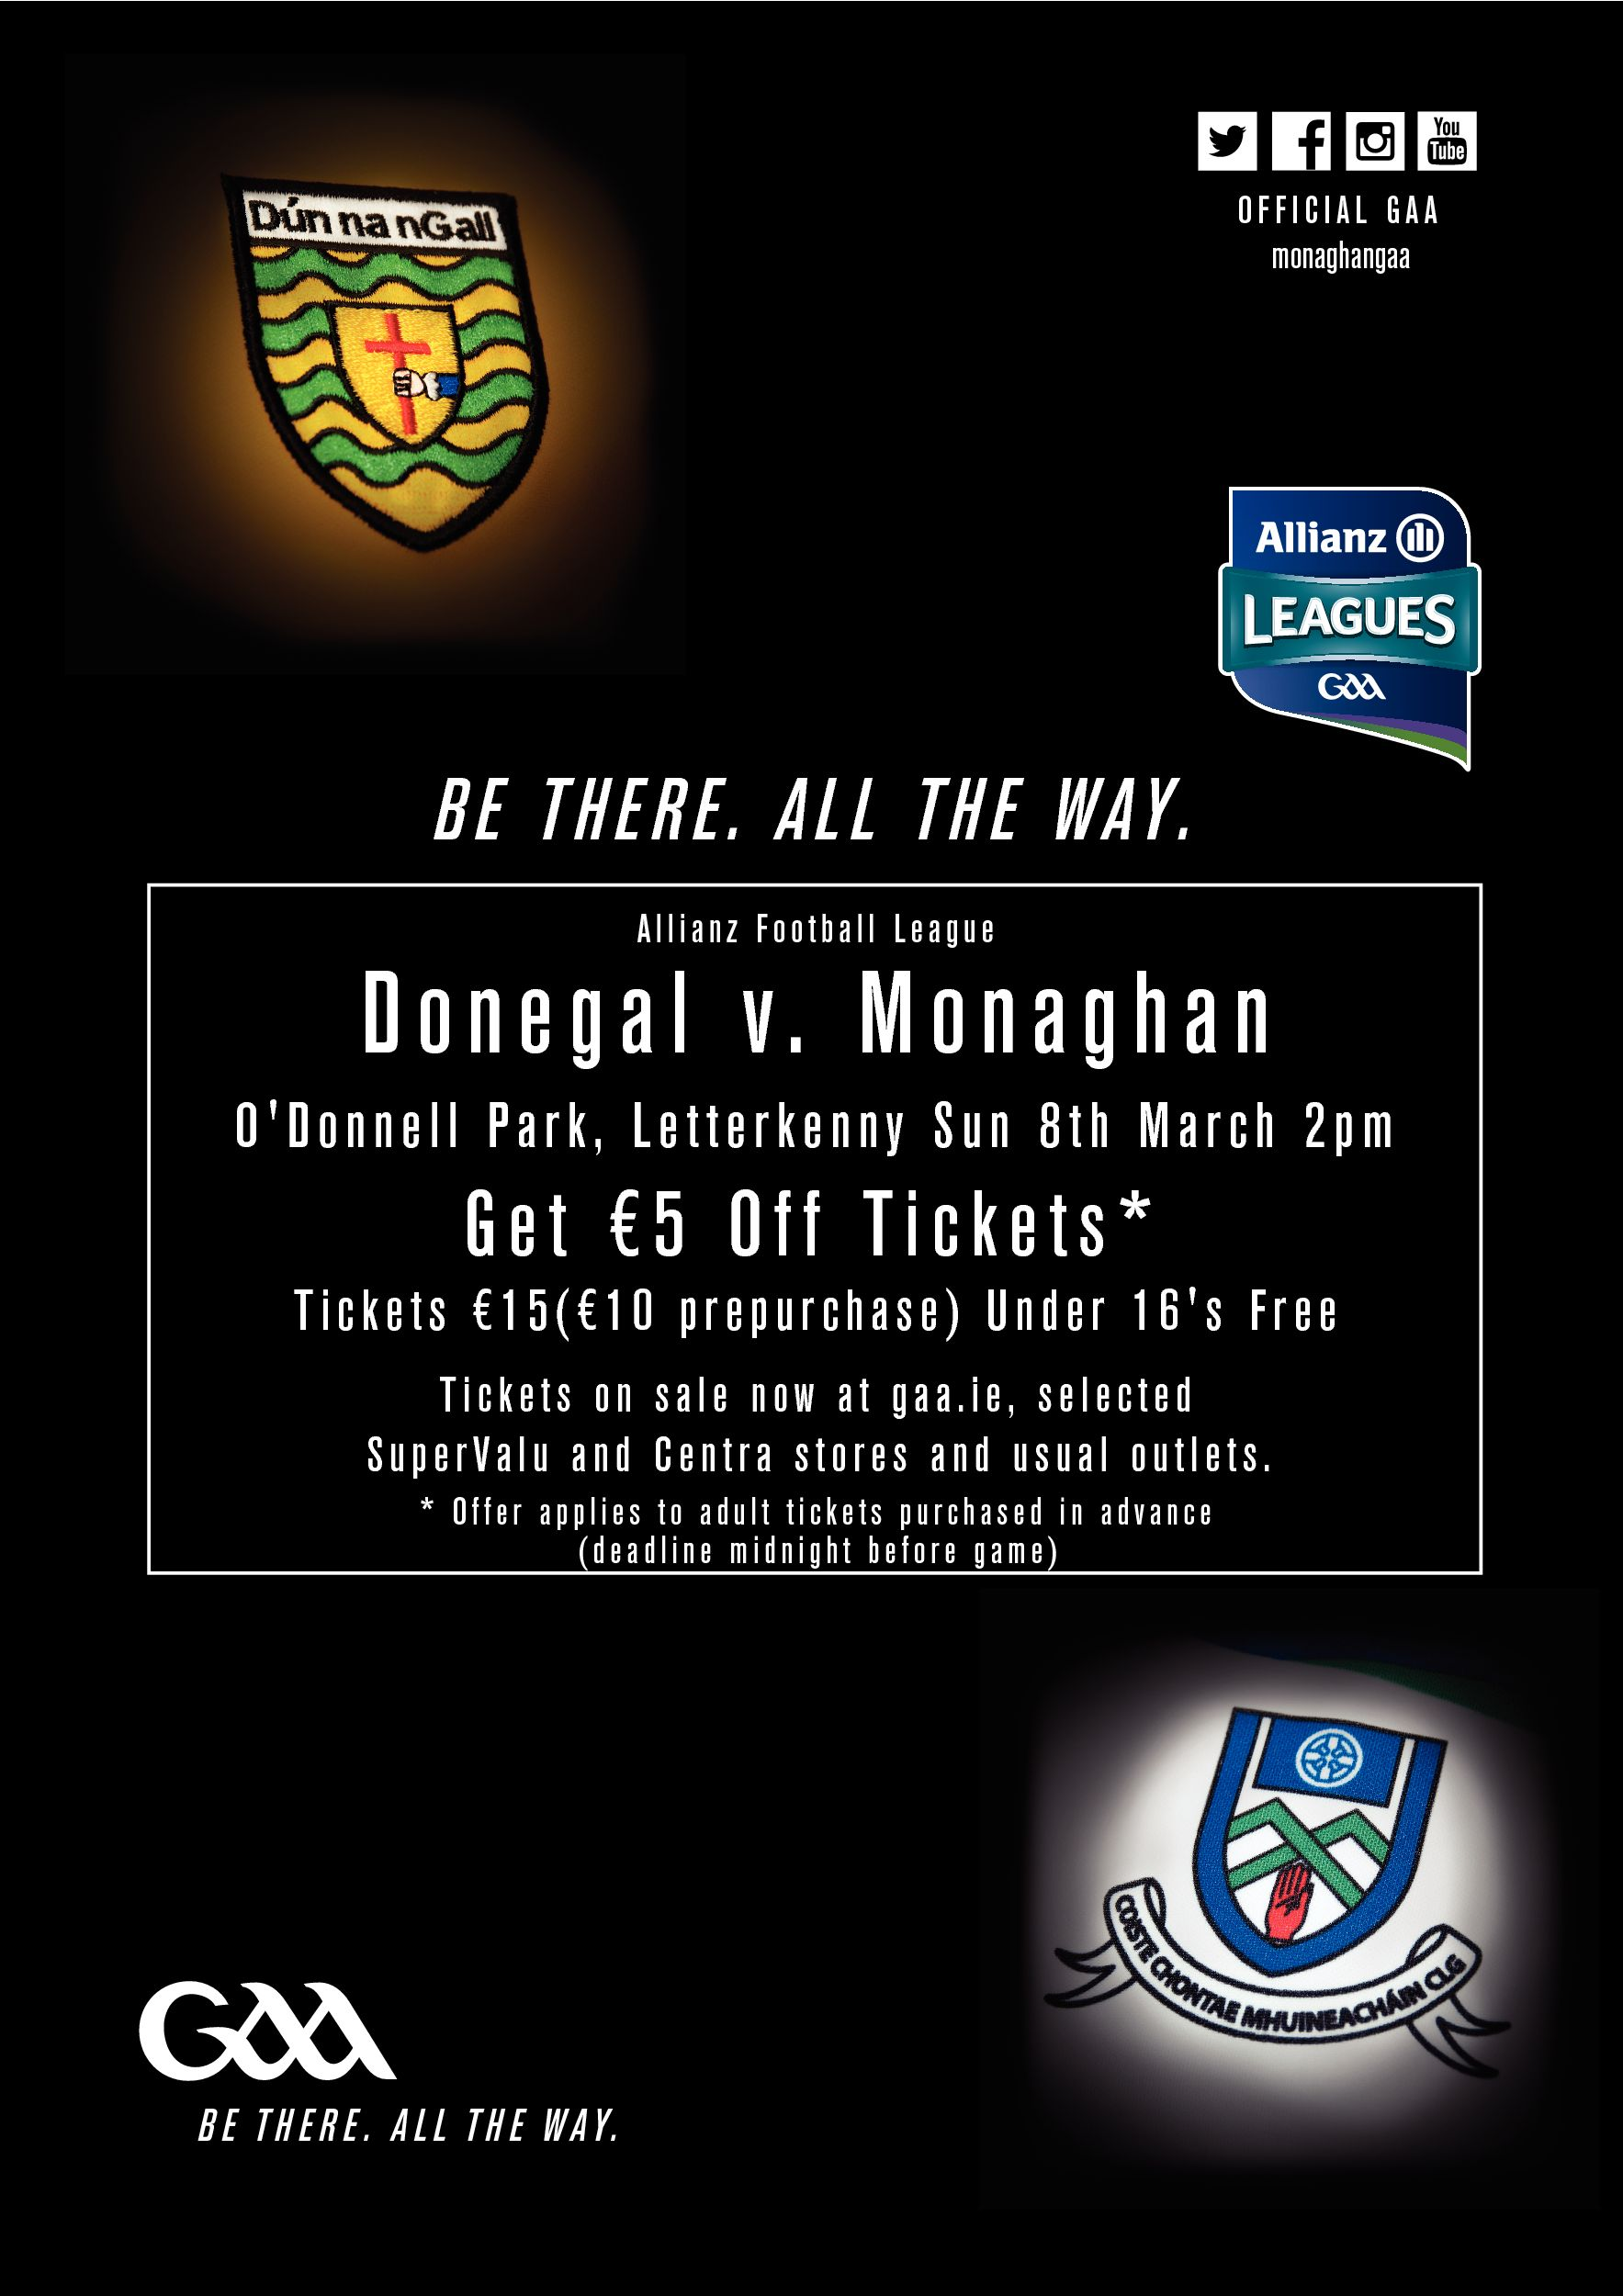 Monaghan Team v Donegal – Sunday 8th March 2pm